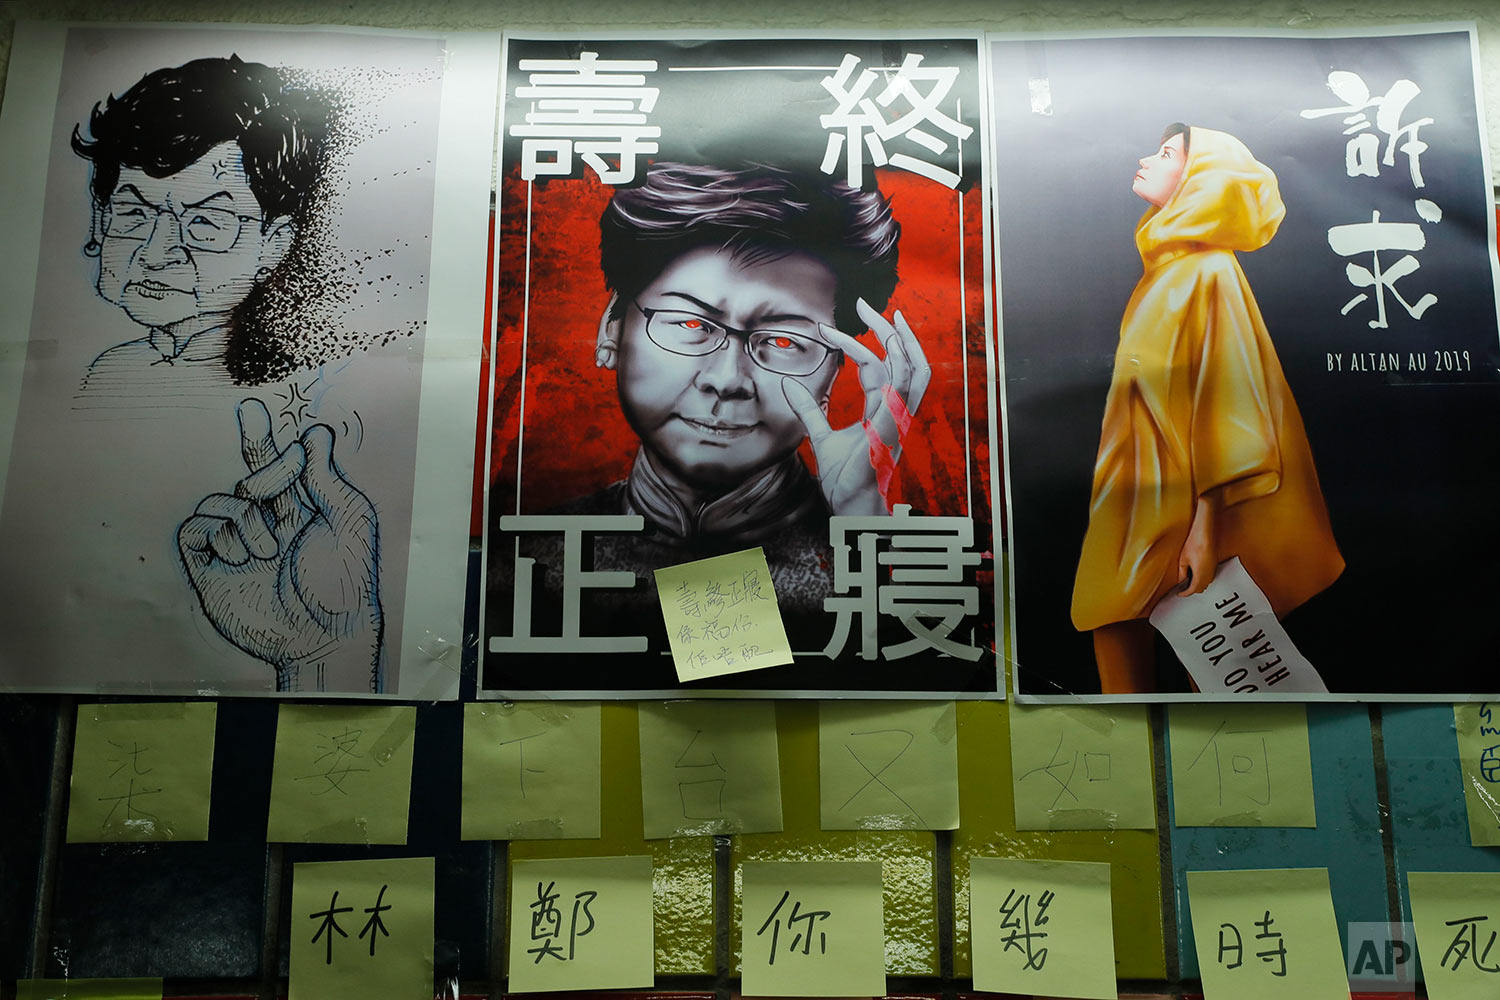 Post-it notes and a caricature of Hong Kong leader Carrie Lam are seen on their version Lennon Wall in Hong Kong, July 12, 2019. (AP Photo/Kin Cheung)